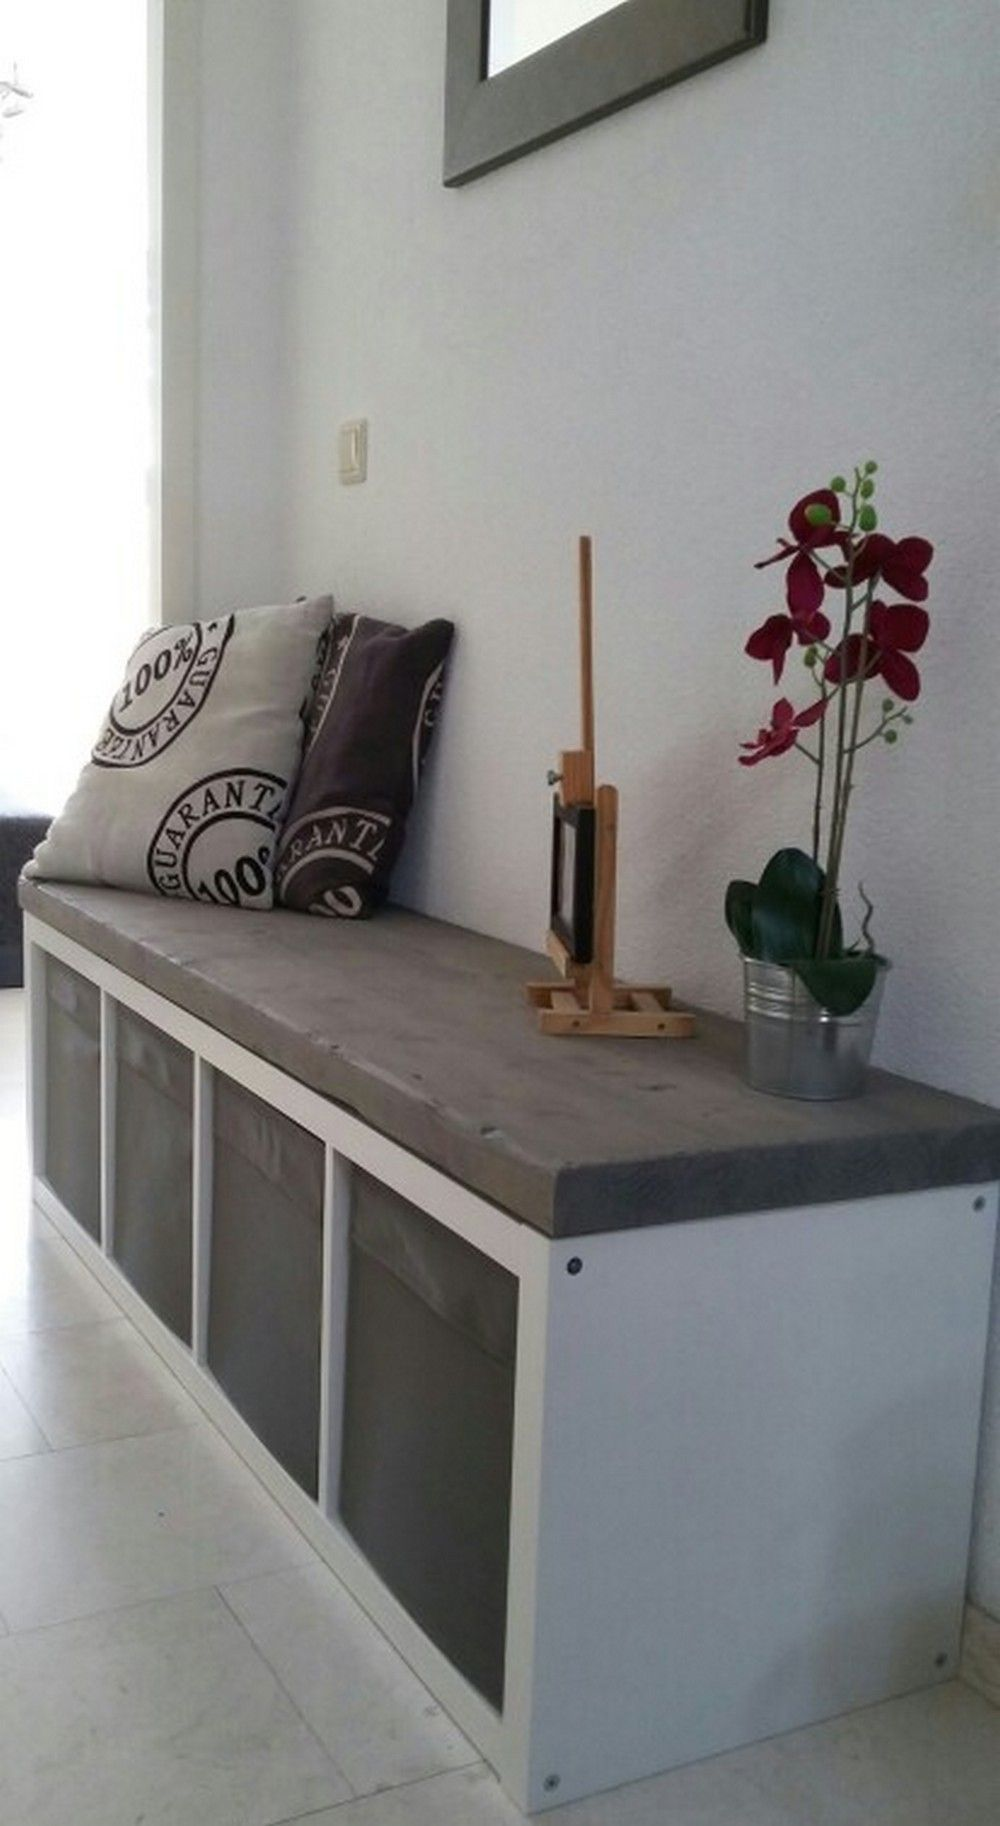 Hallway storage and seating  Pin by Corey Marie on Organizing the home in   Pinterest  Ikea